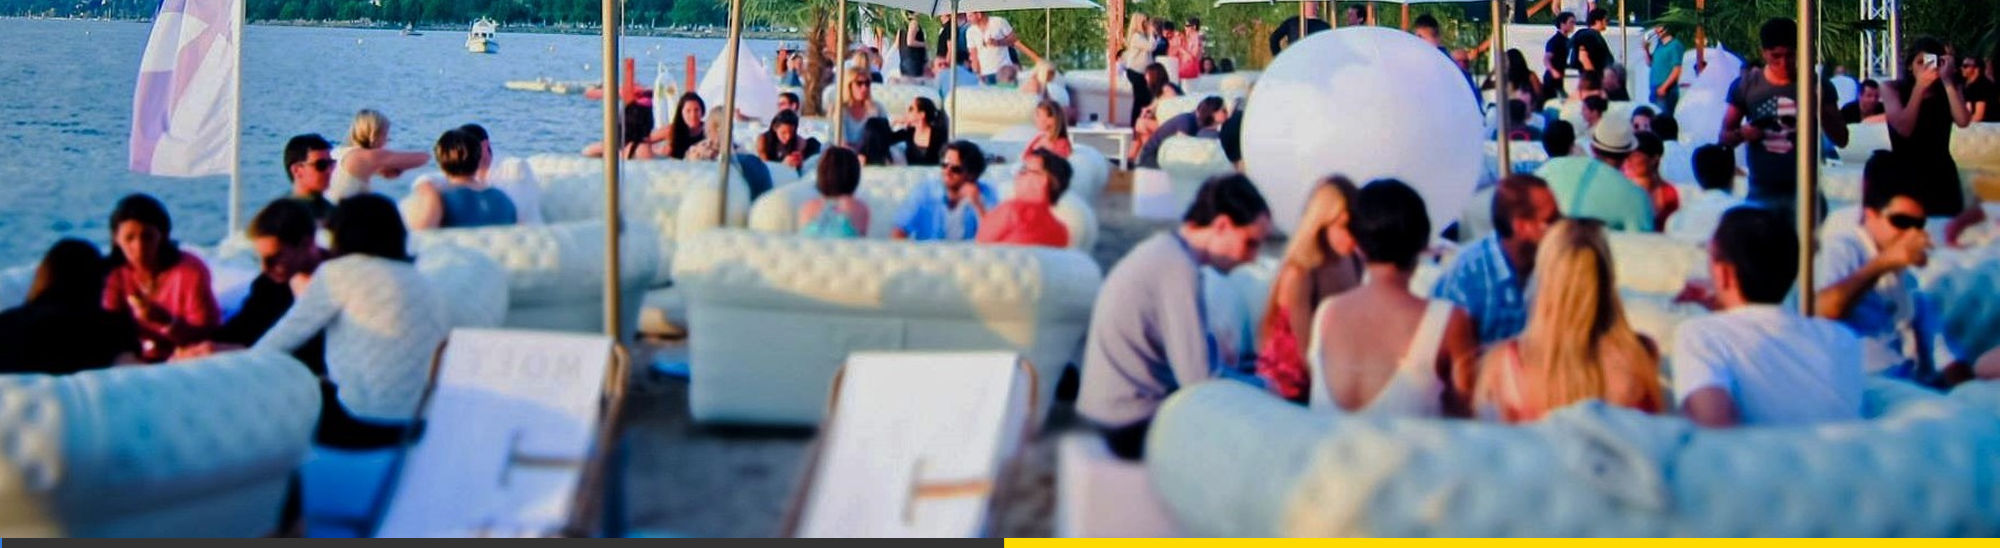 Inflatable blofield furniture on beach for a party